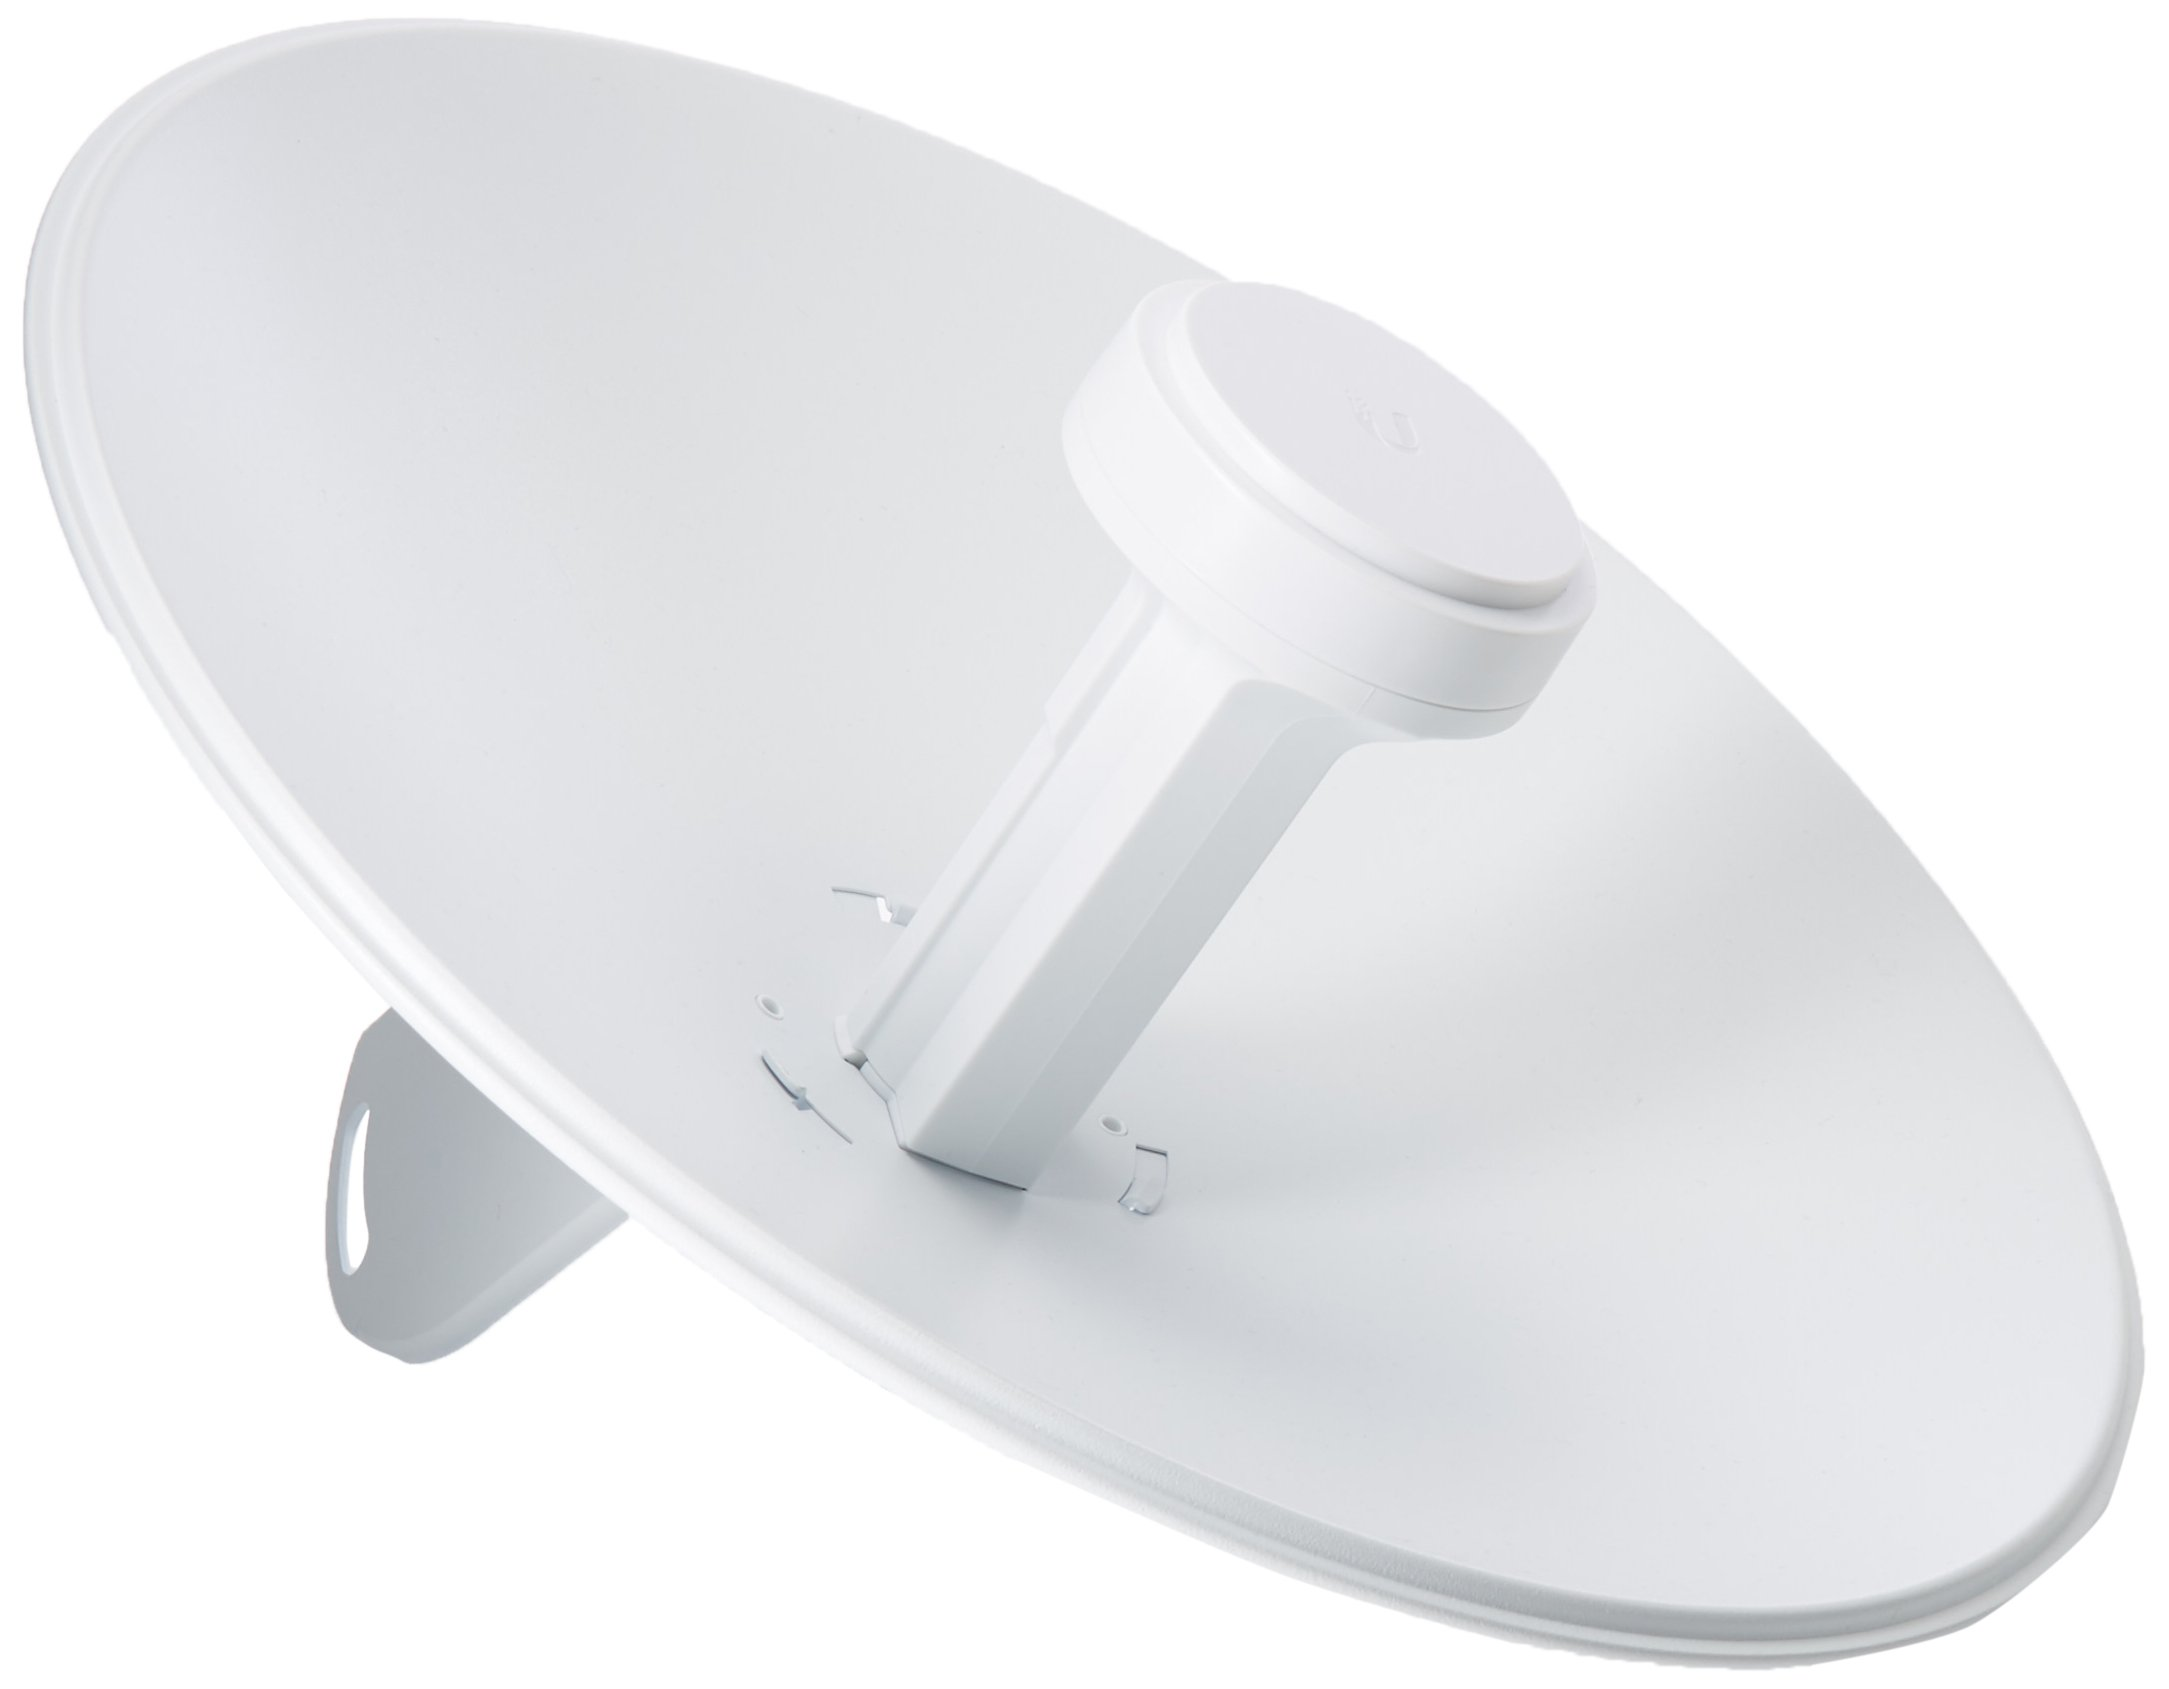 Ubiquiti PowerBeam M2 Wireless Bridge (PBE-M2-400) by Ubiquiti Networks